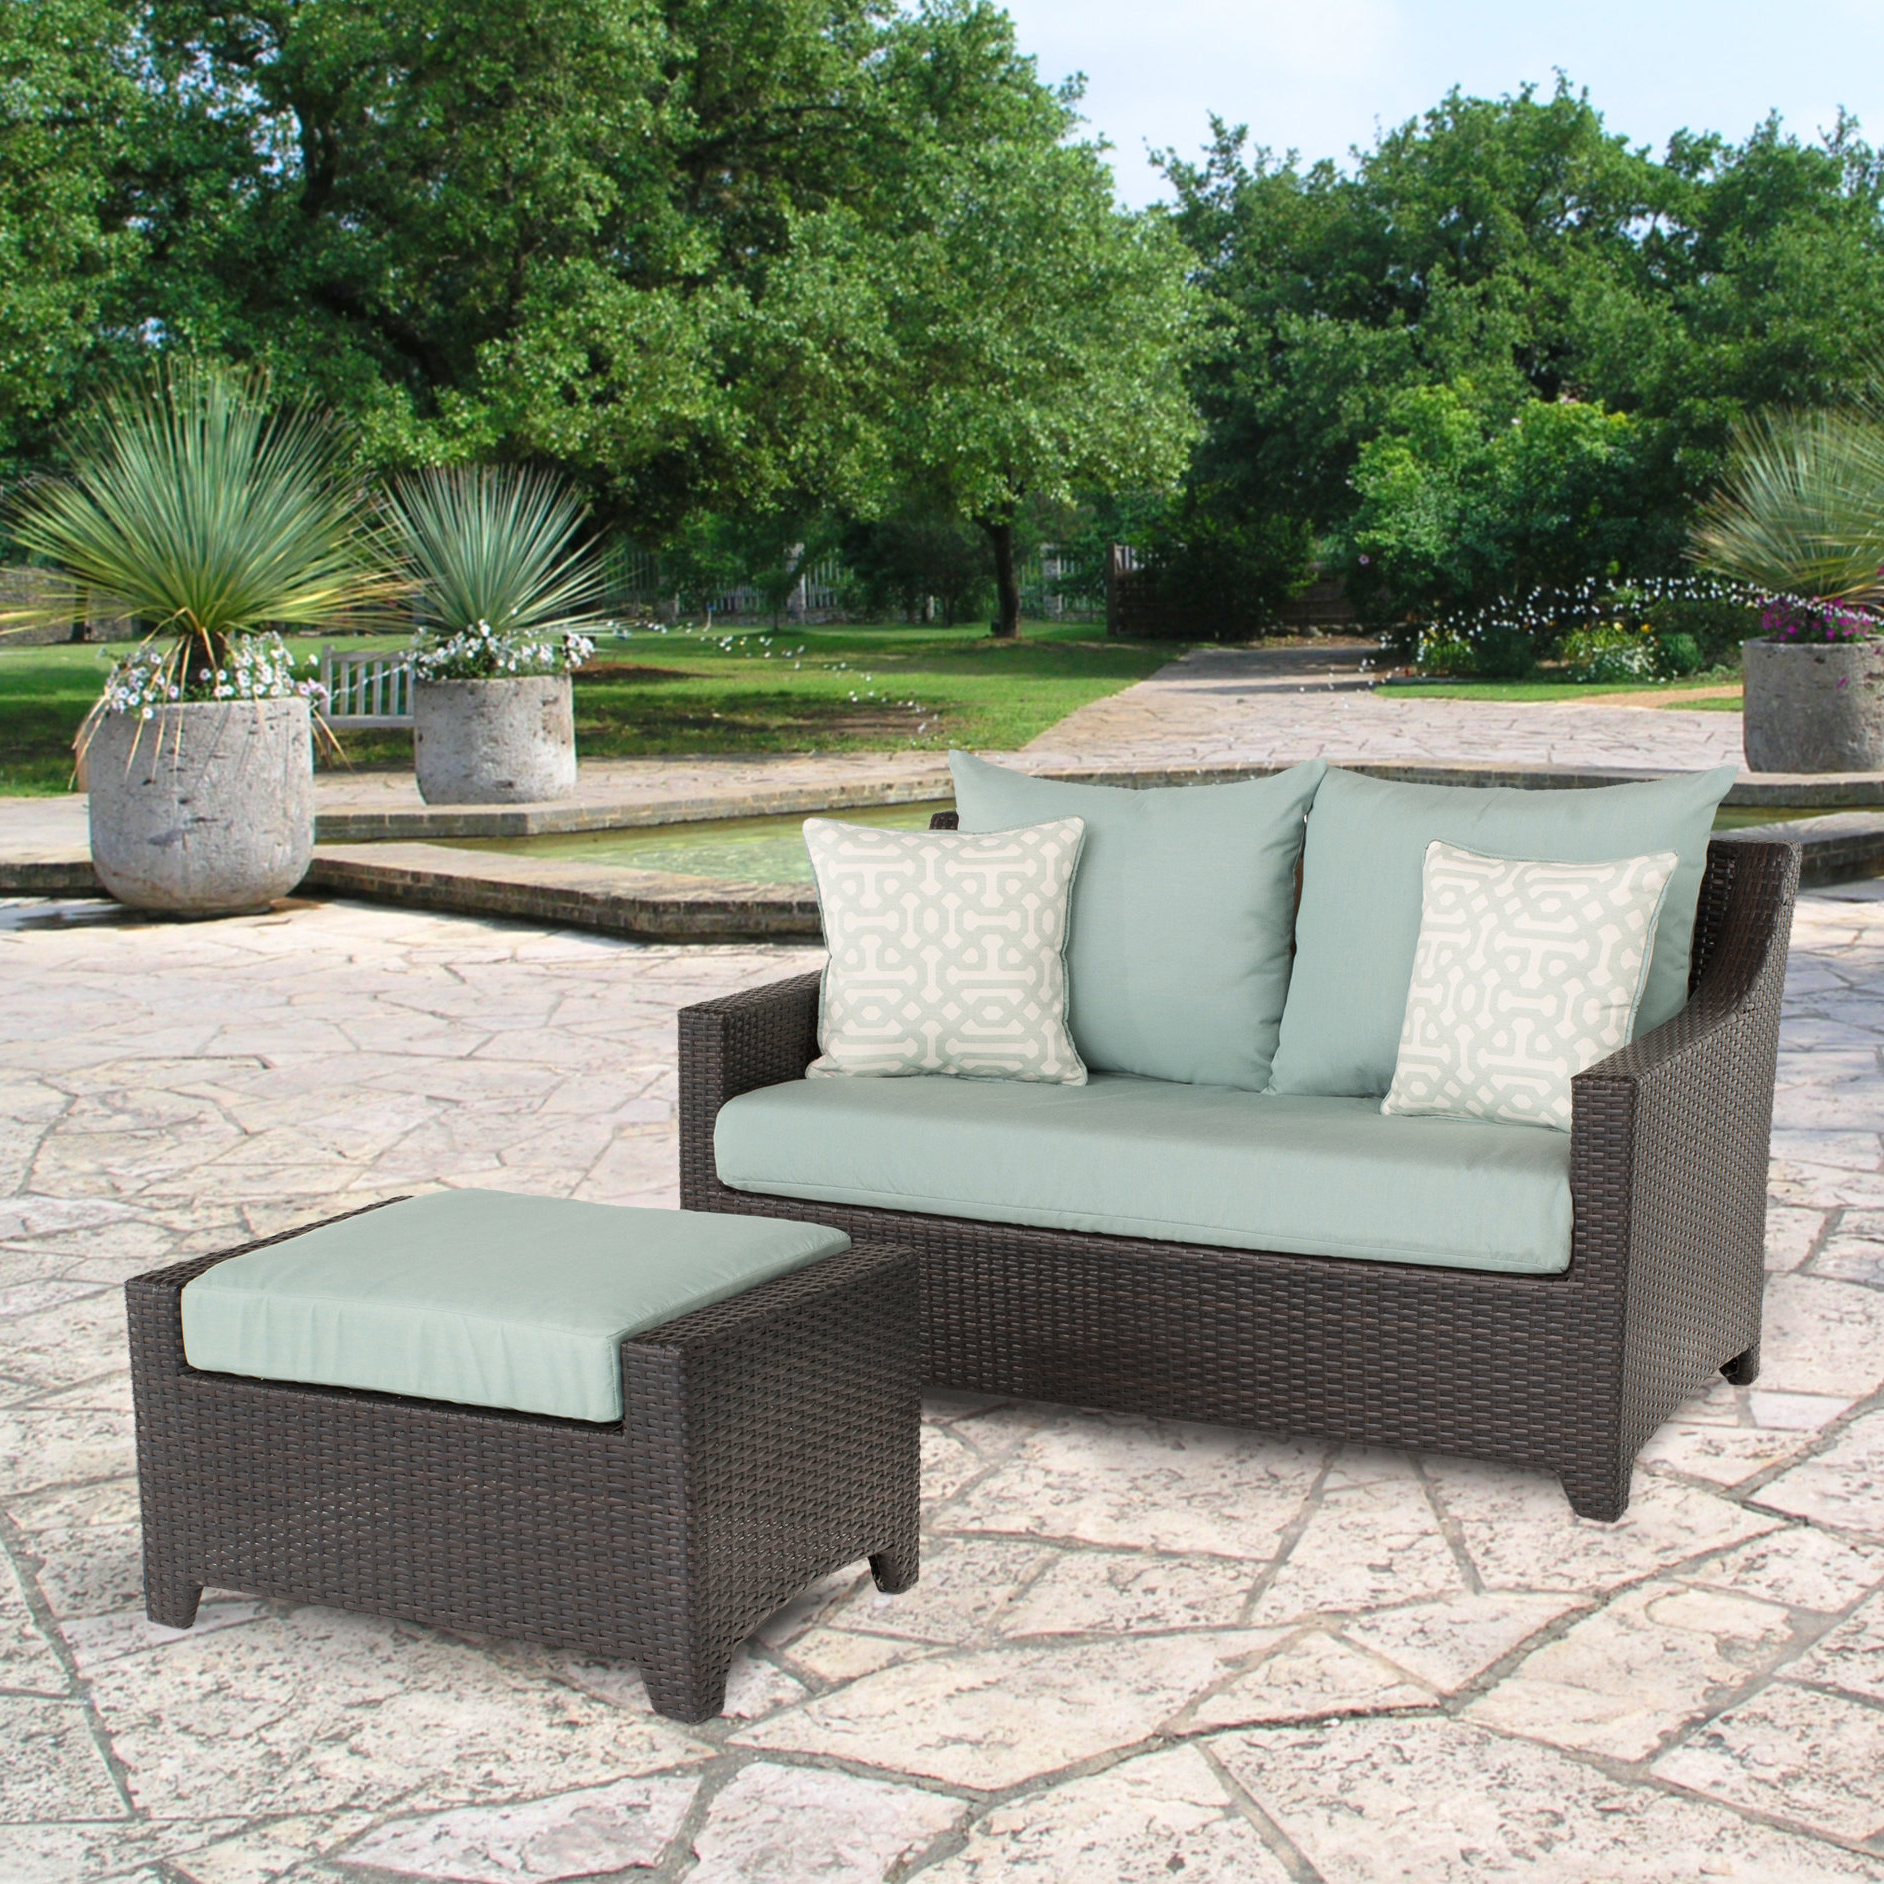 Fashionable Northridge Loveseat With Cushions With Regard To Avadi Outdoor Sofas & Ottomans 3 Piece Set (View 17 of 25)